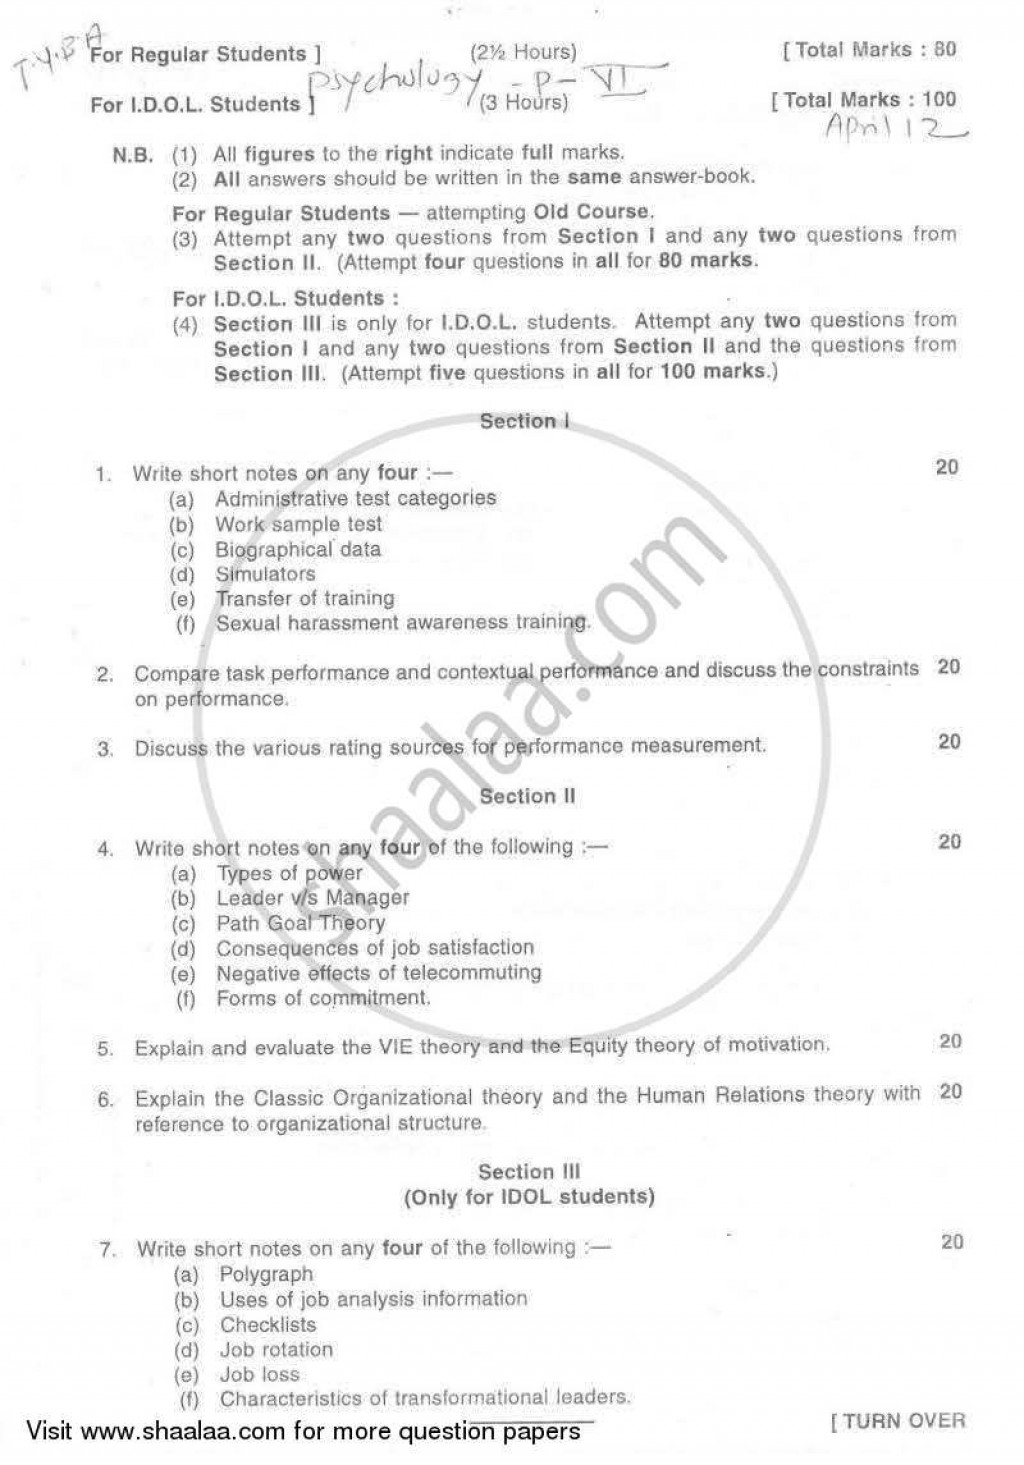 017 Psychologyearch Paper On Dreams University Of Mumbai Bachelor Industrial Organizational T Y Yearly Pattern Semester Tyba 2011 29a03925dfc524f2aa4cb10e4d3da996a Singular Psychology Research Questions Topics Large